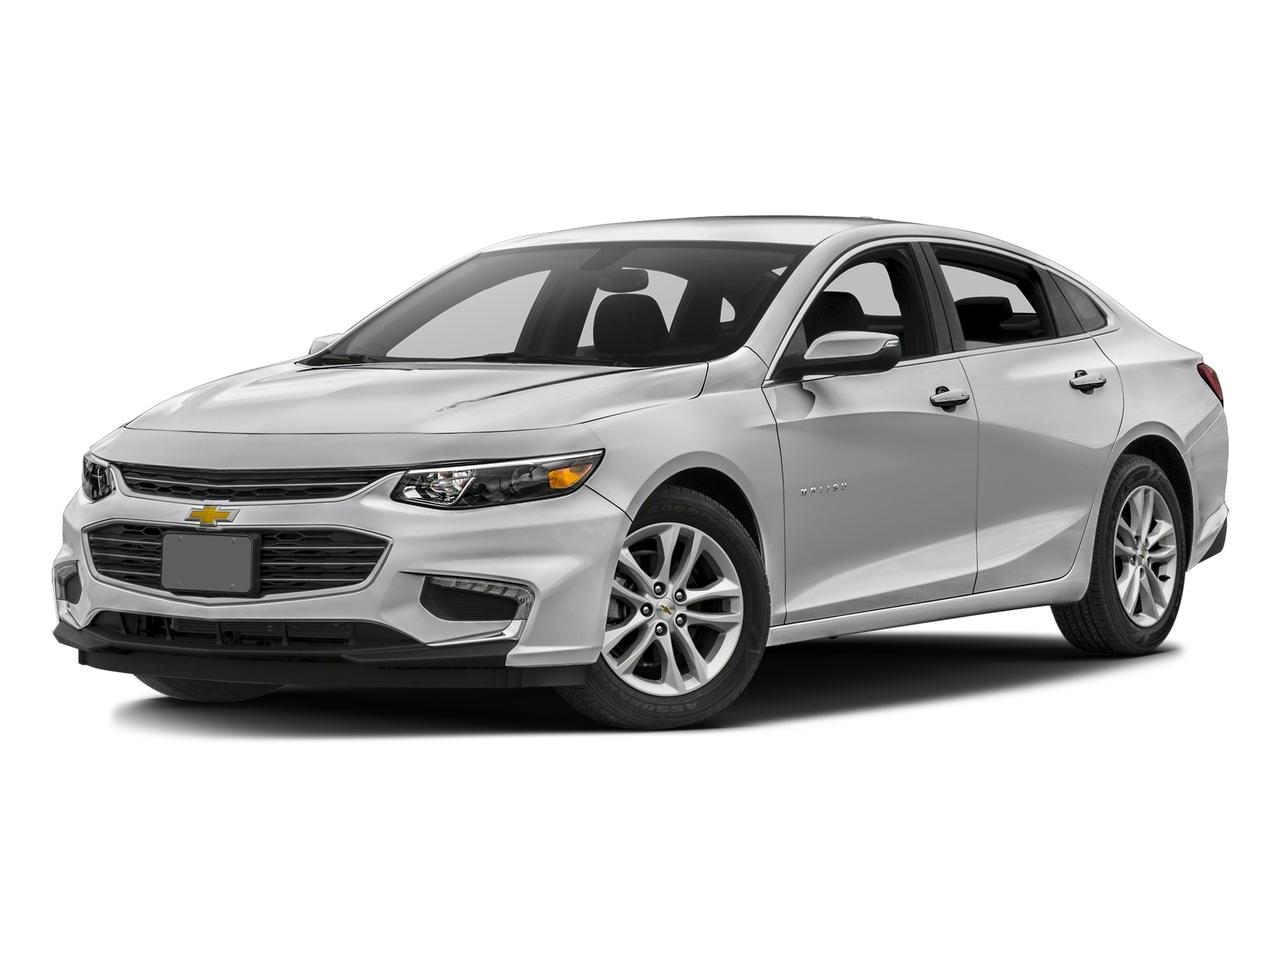 2017 Chevrolet Malibu Vehicle Photo in Warrensville Heights, OH 44128